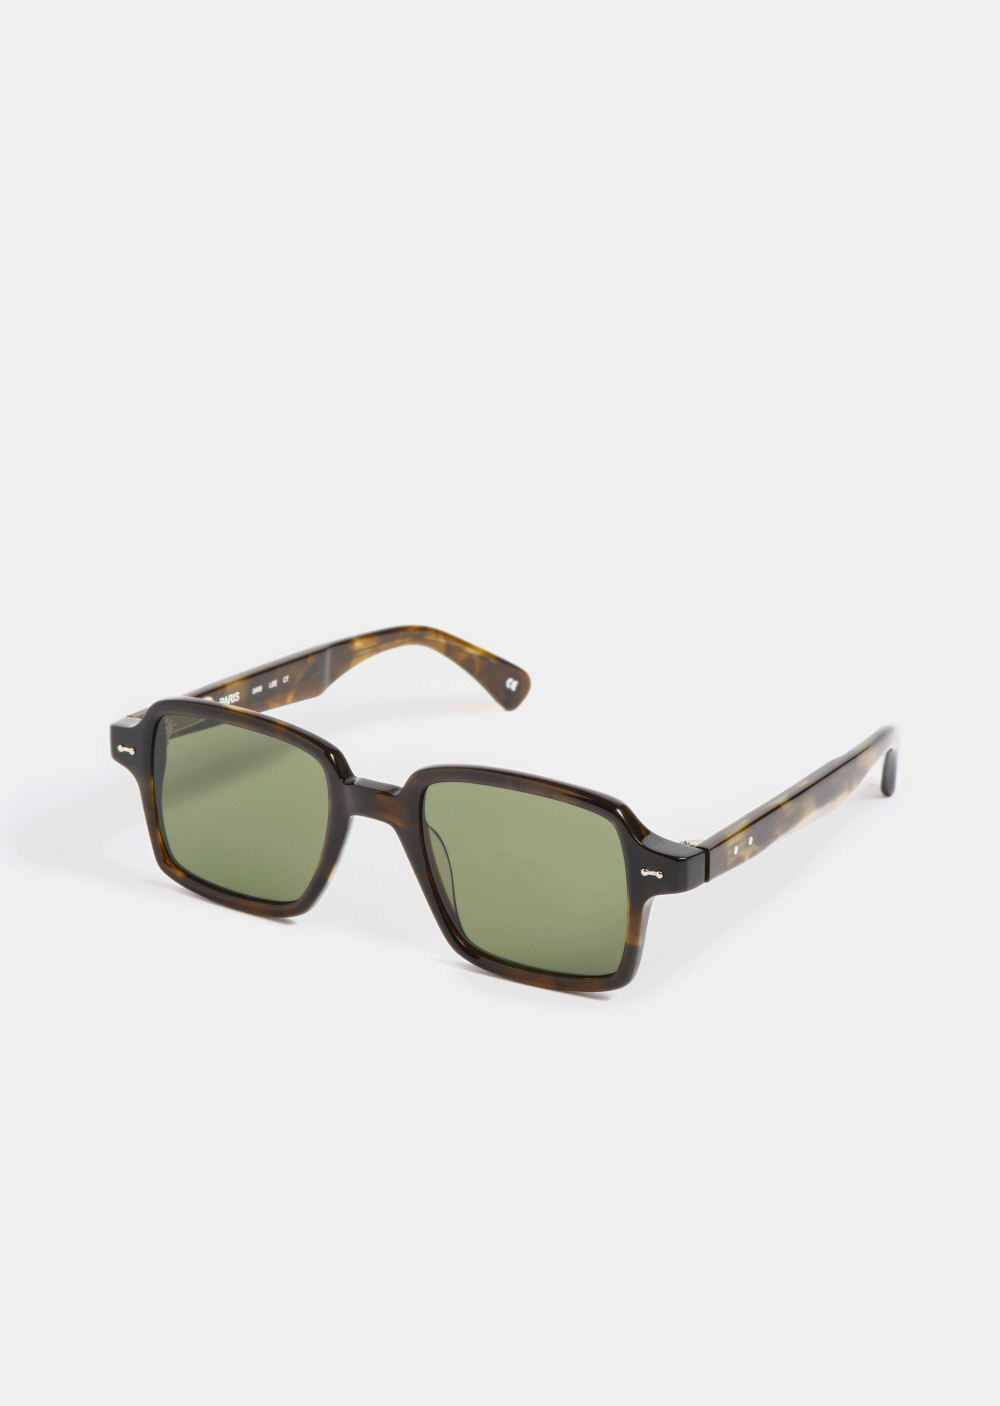 PETER AND MAY -  - S89 Lee camo tortoise g15